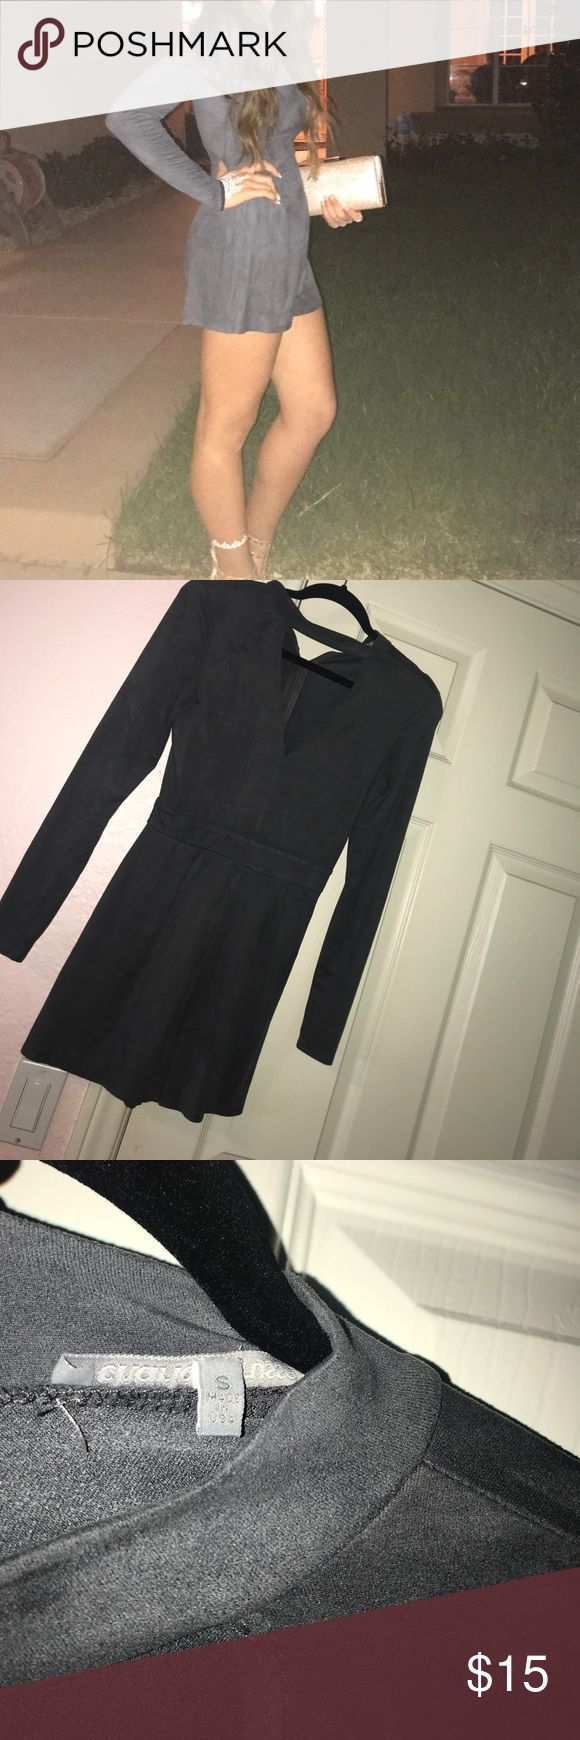 Romper Charlotte ruuse Worn once to homecoming Charlotte Russe Dresses